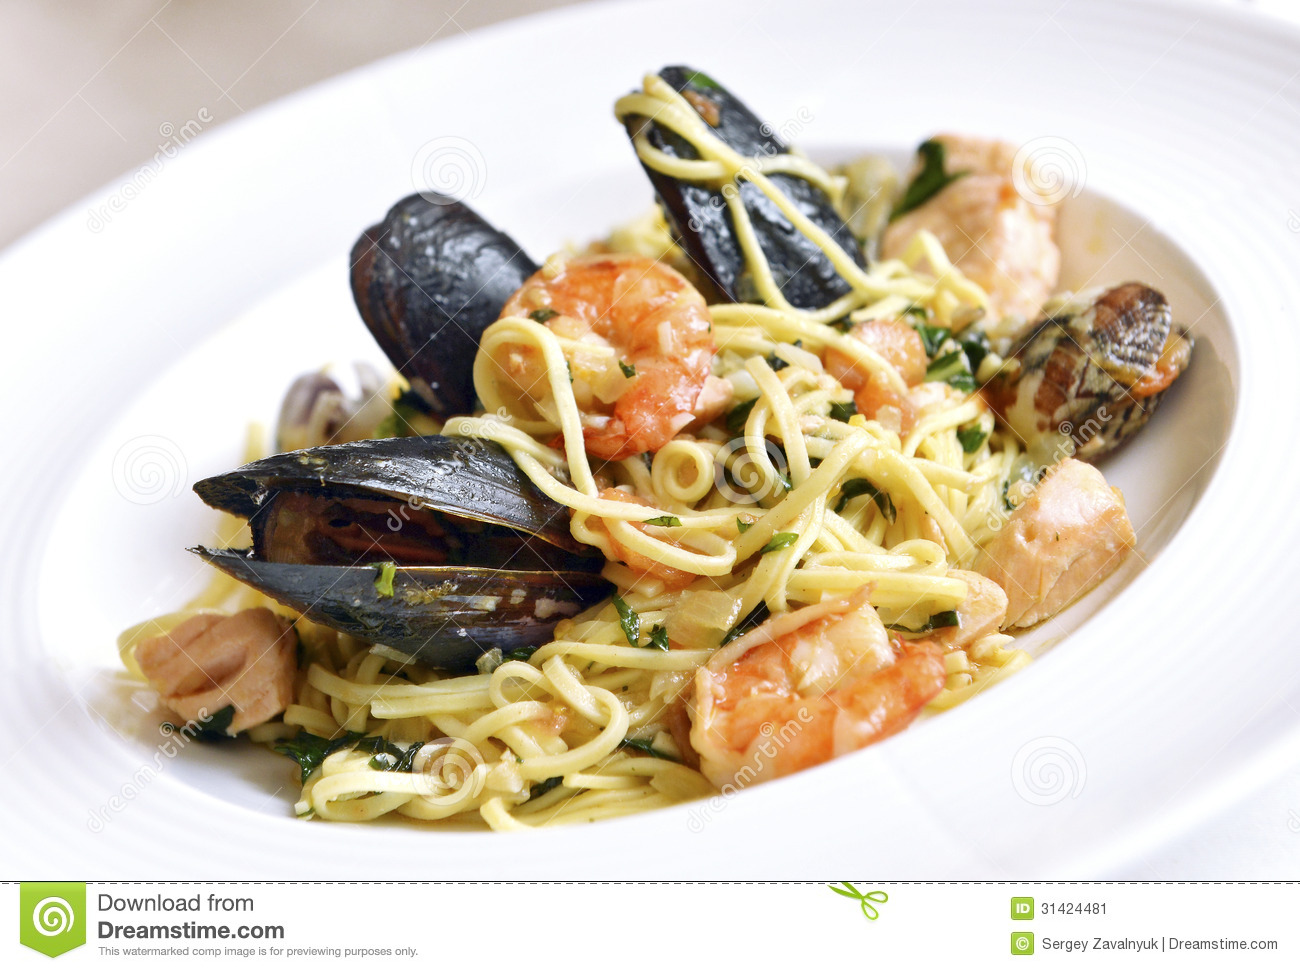 Fresh Pasta With Seafood Stock Image - Image: 31424481